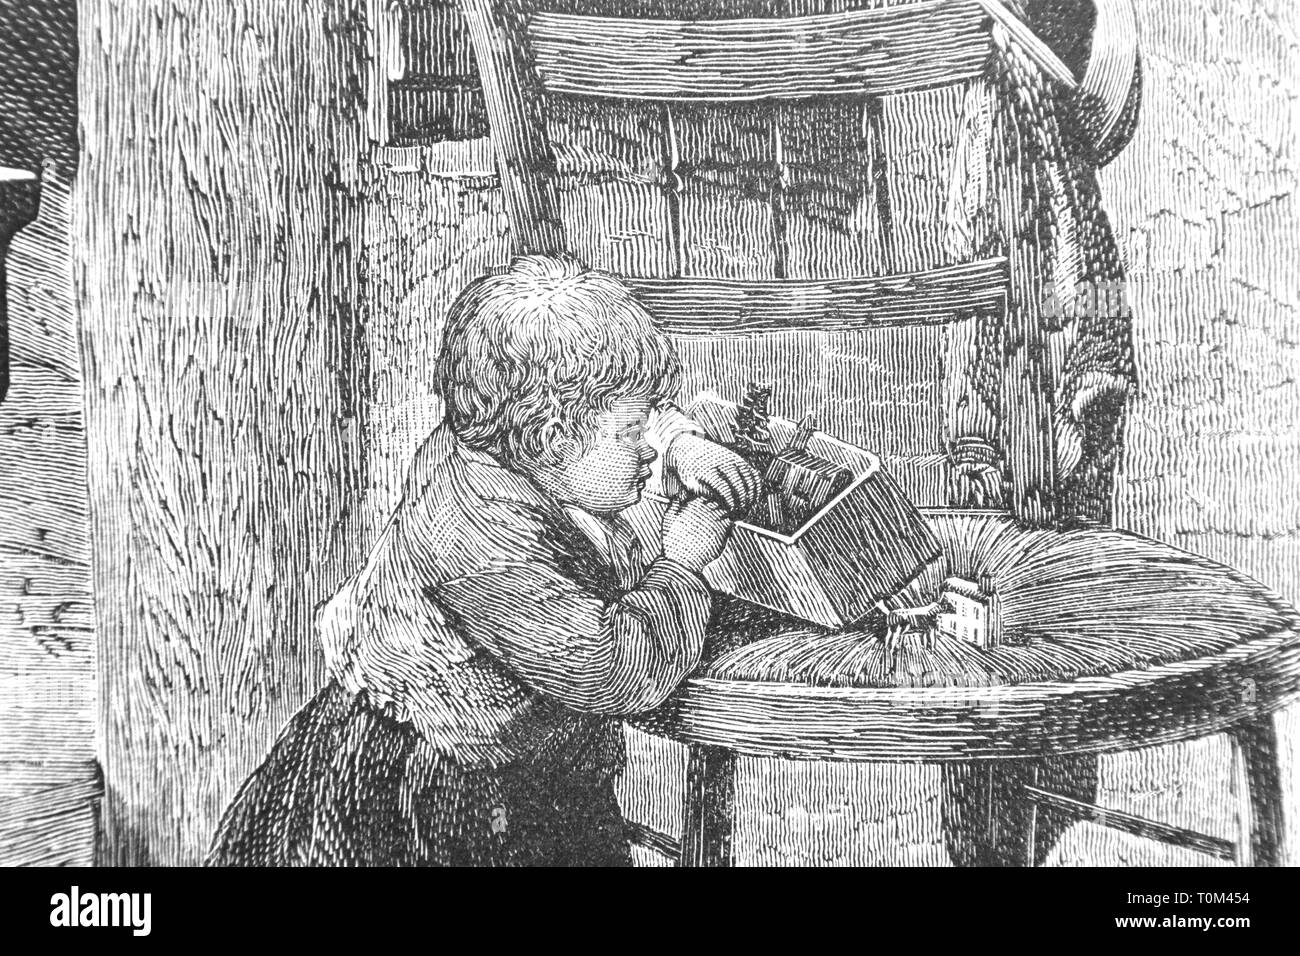 Child looks in the box - Vintage Engraved Illustration, 1894 - Stock Image